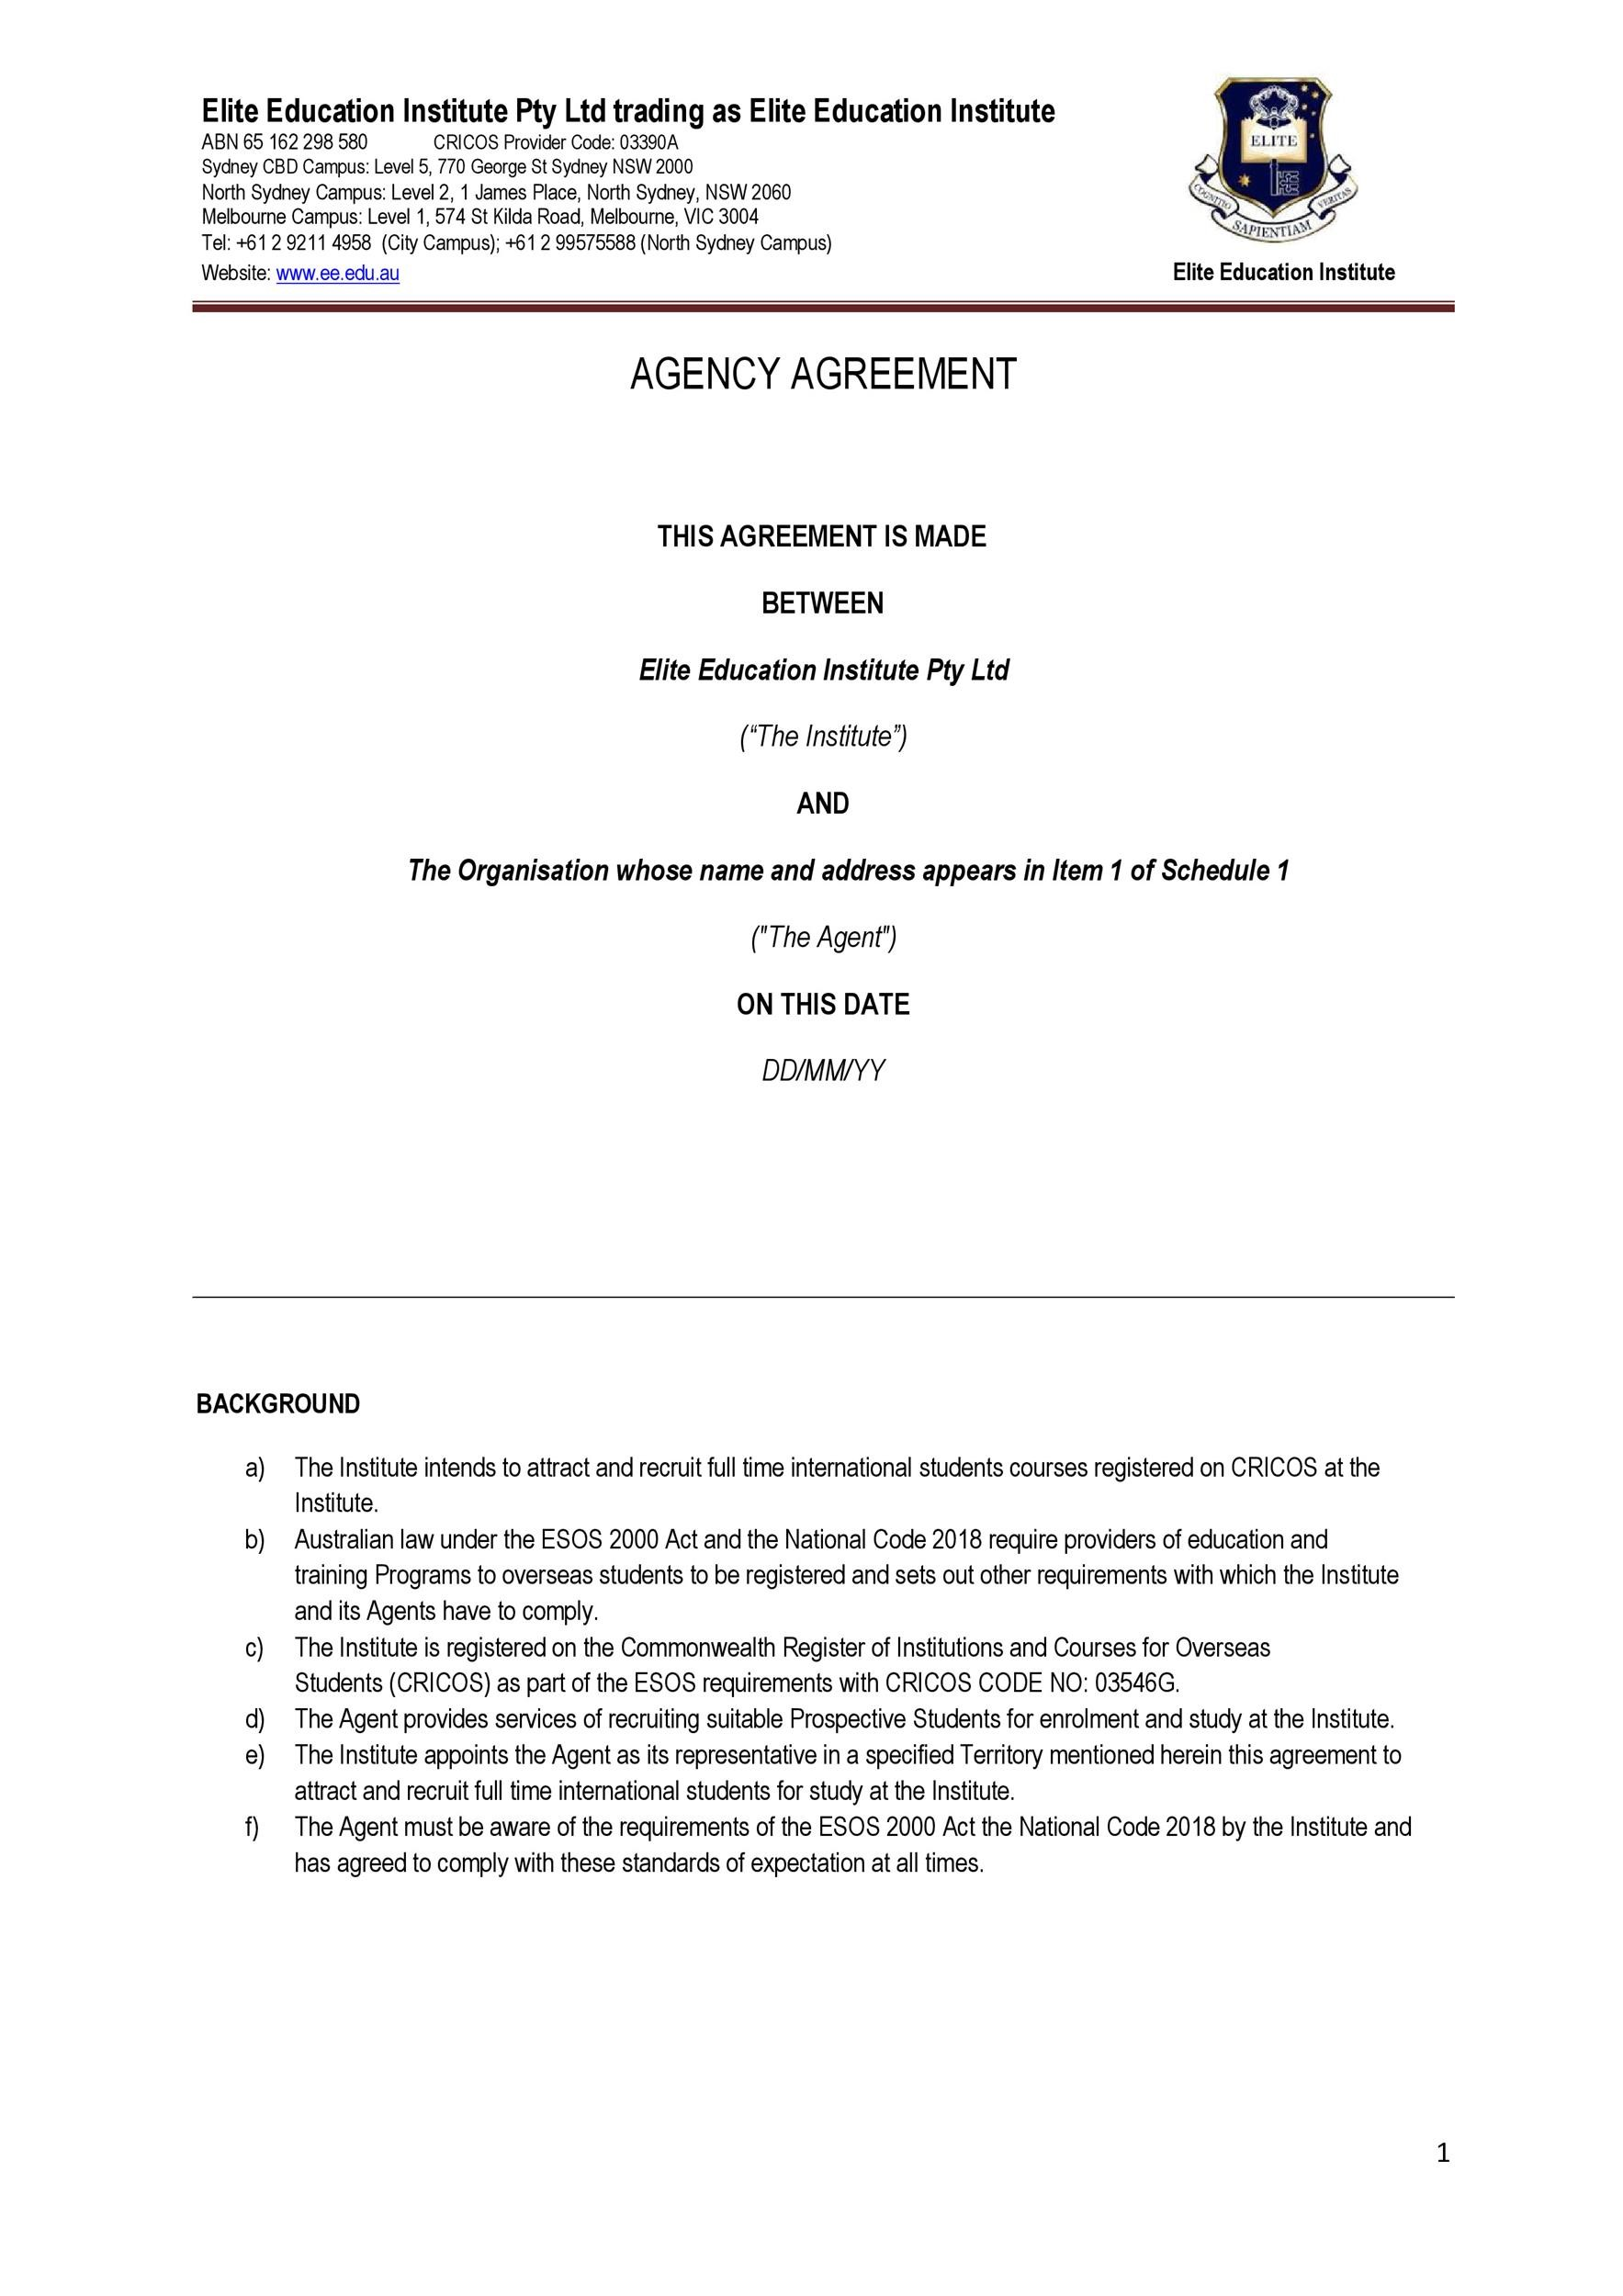 Free agency agreement 02